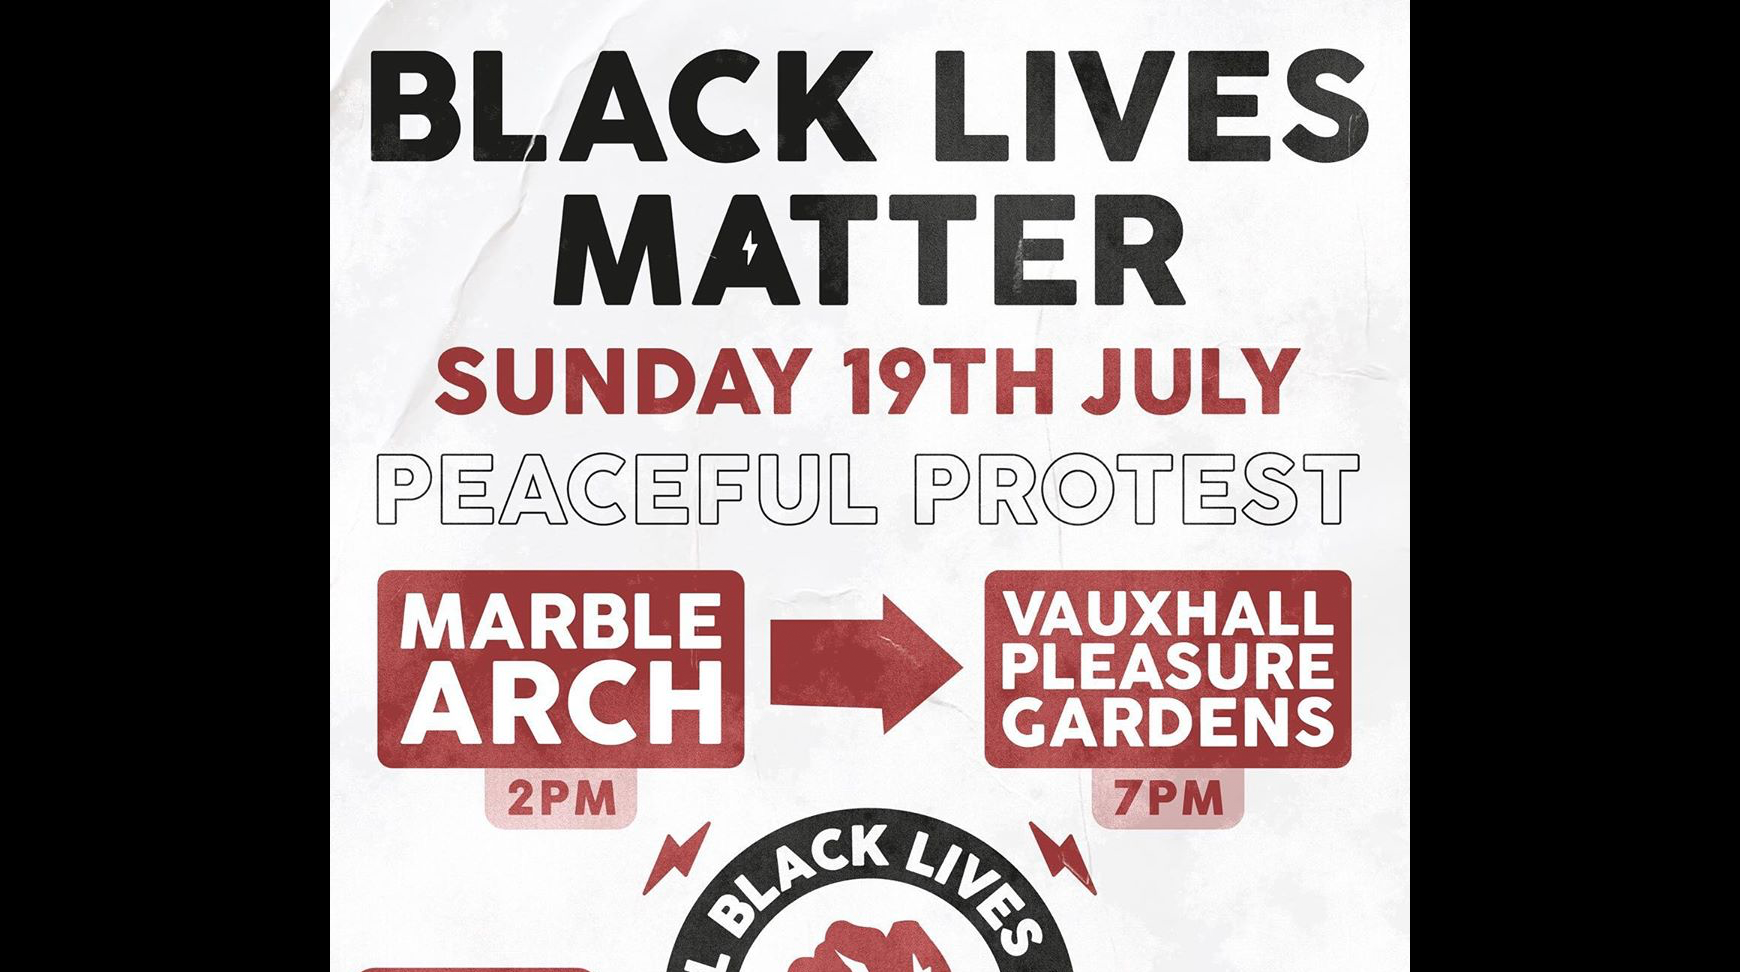 blm protest 19 july marble arch london